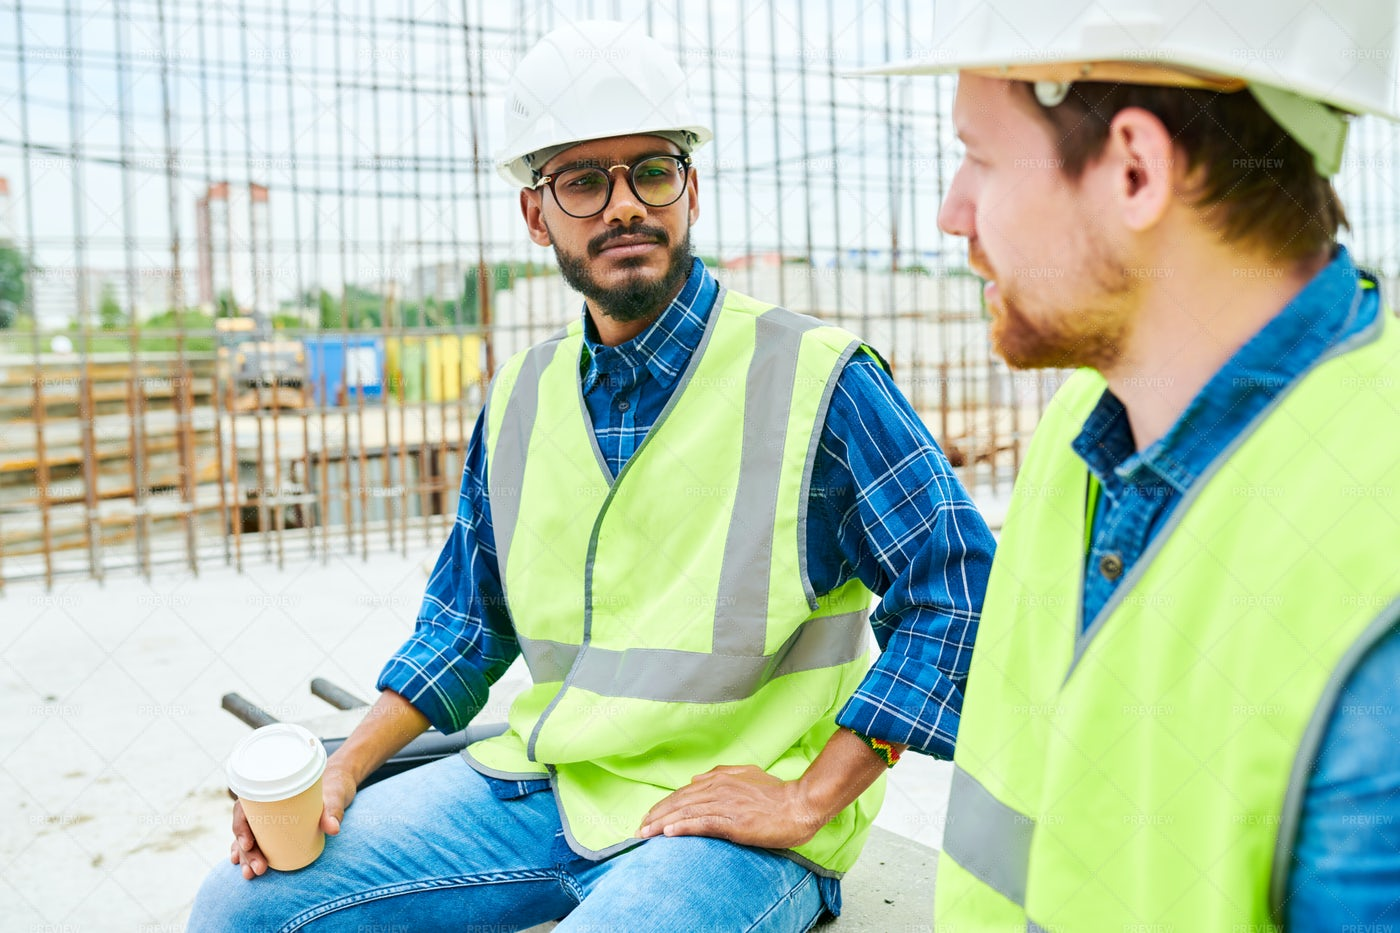 Workers Chatting On Break: Stock Photos